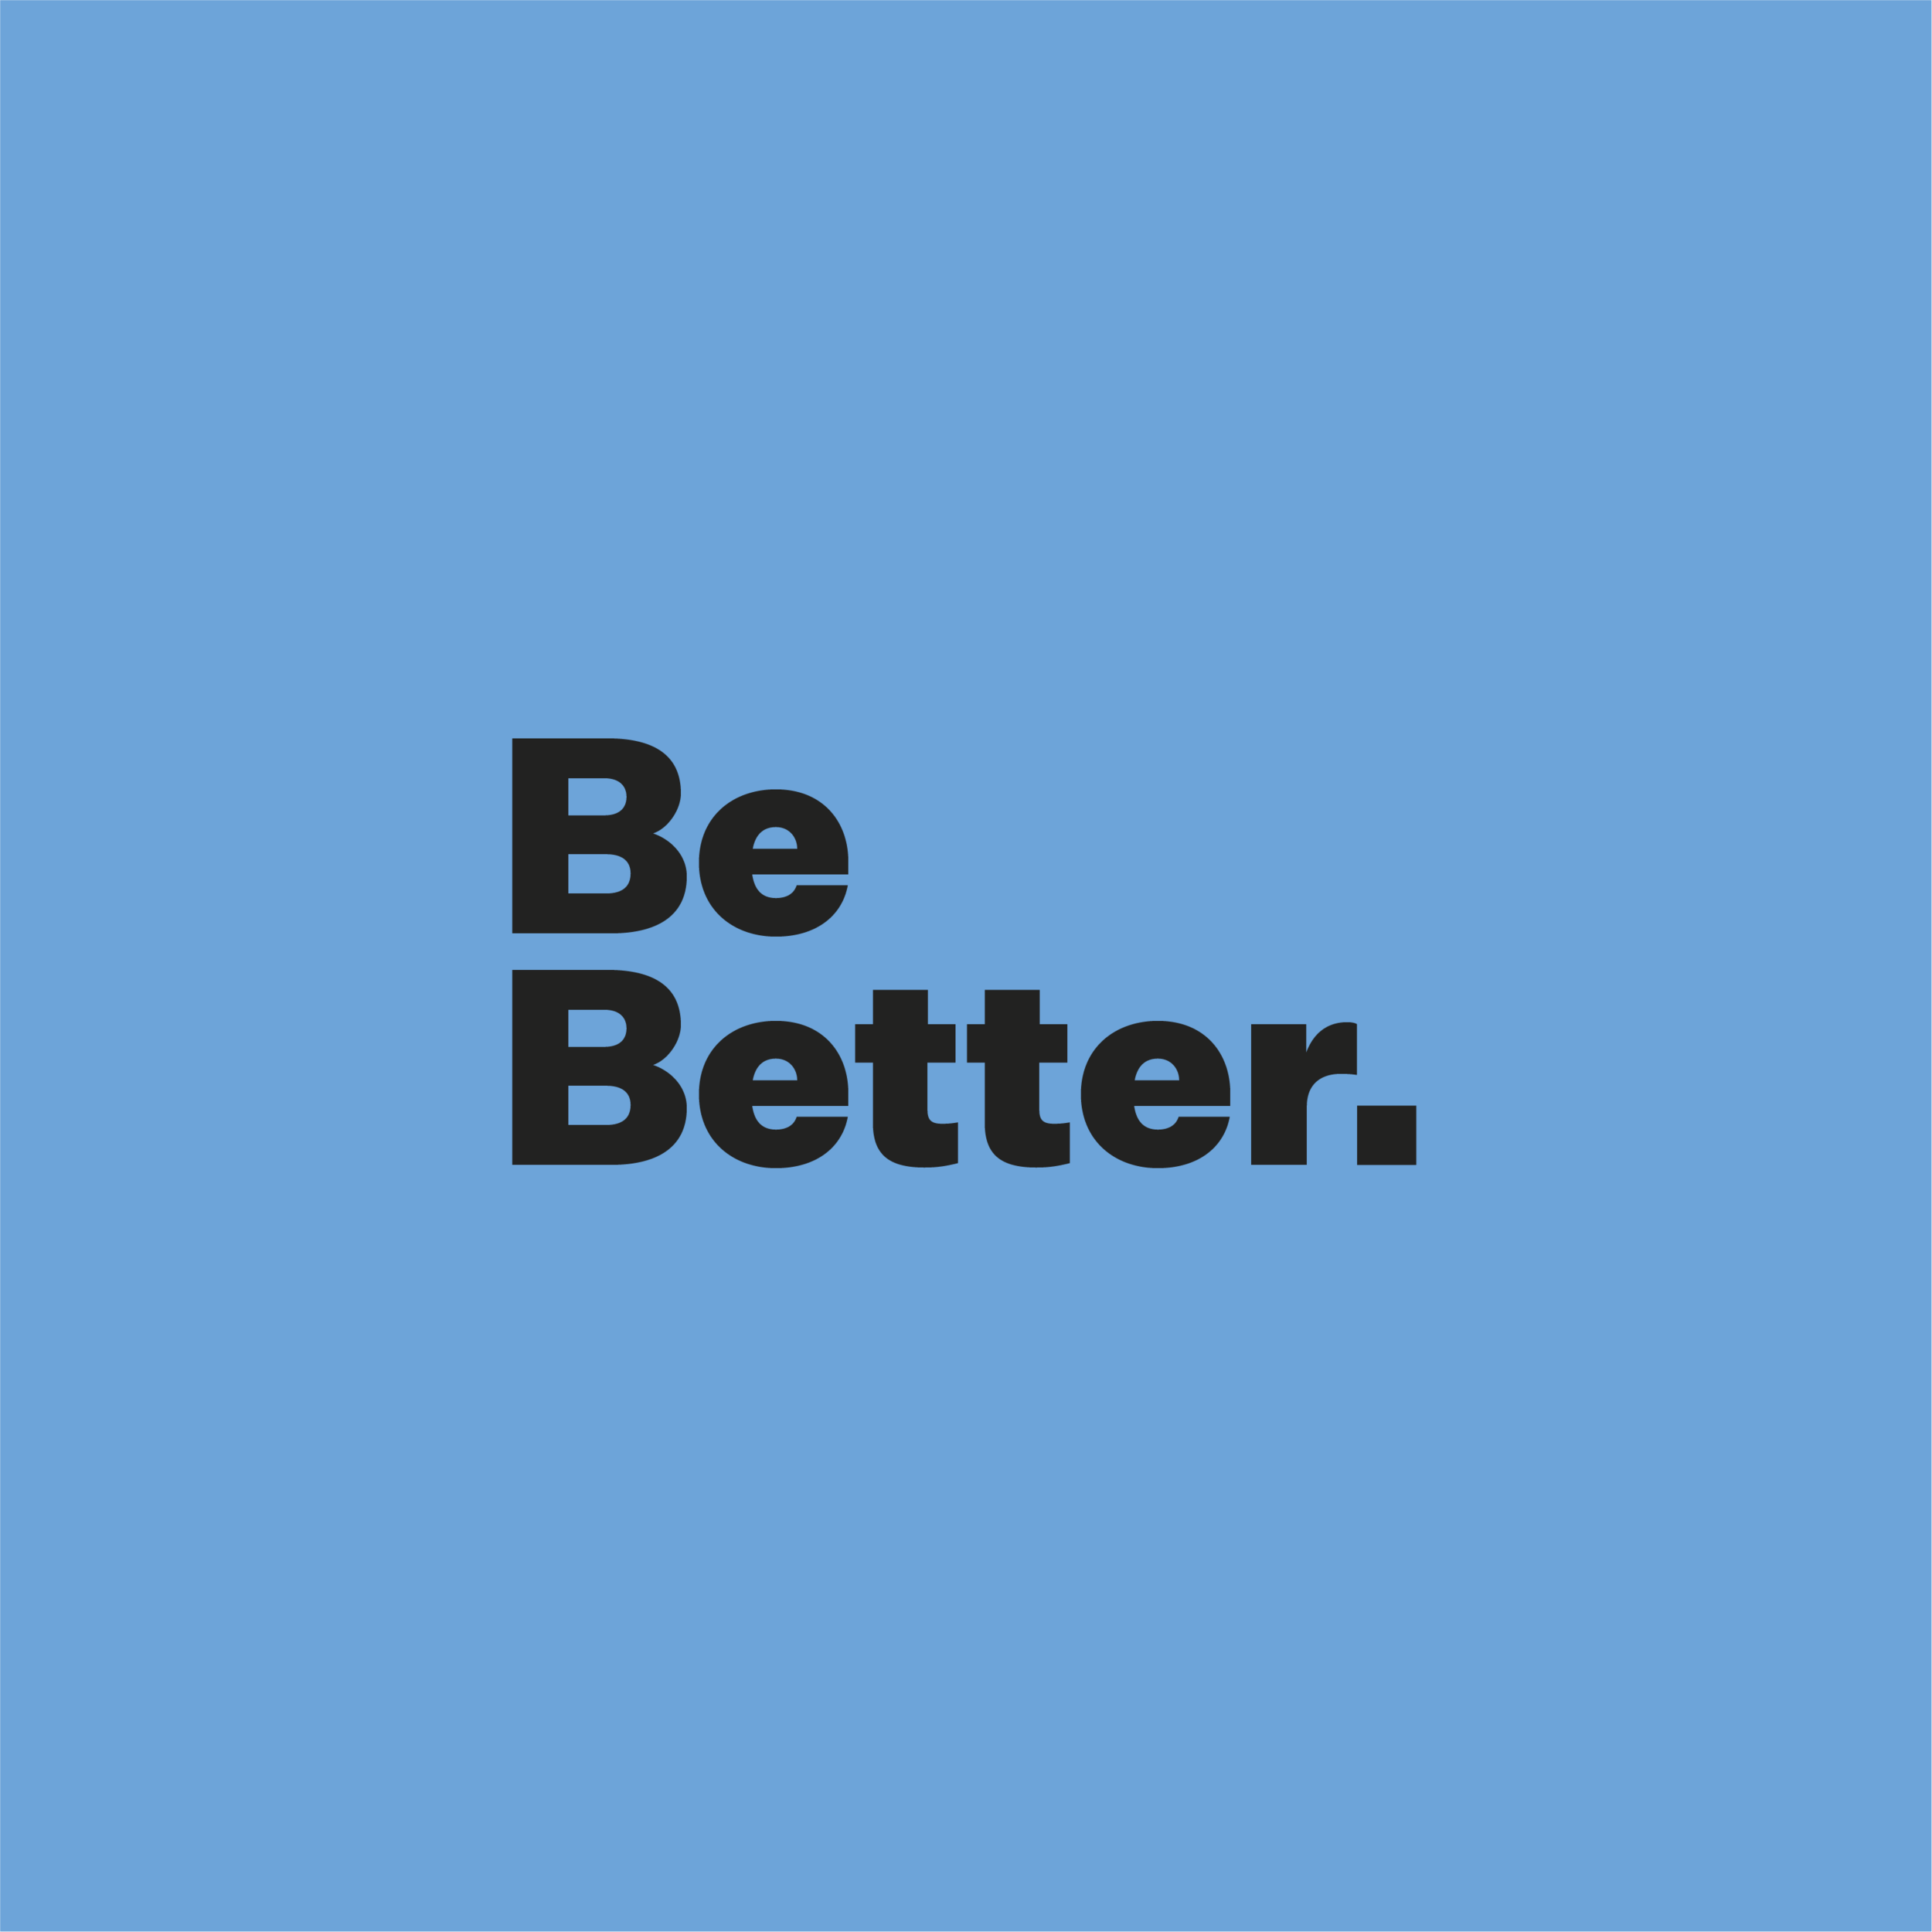 Brad Brosnan - Social Media - Colour_Be Better.png